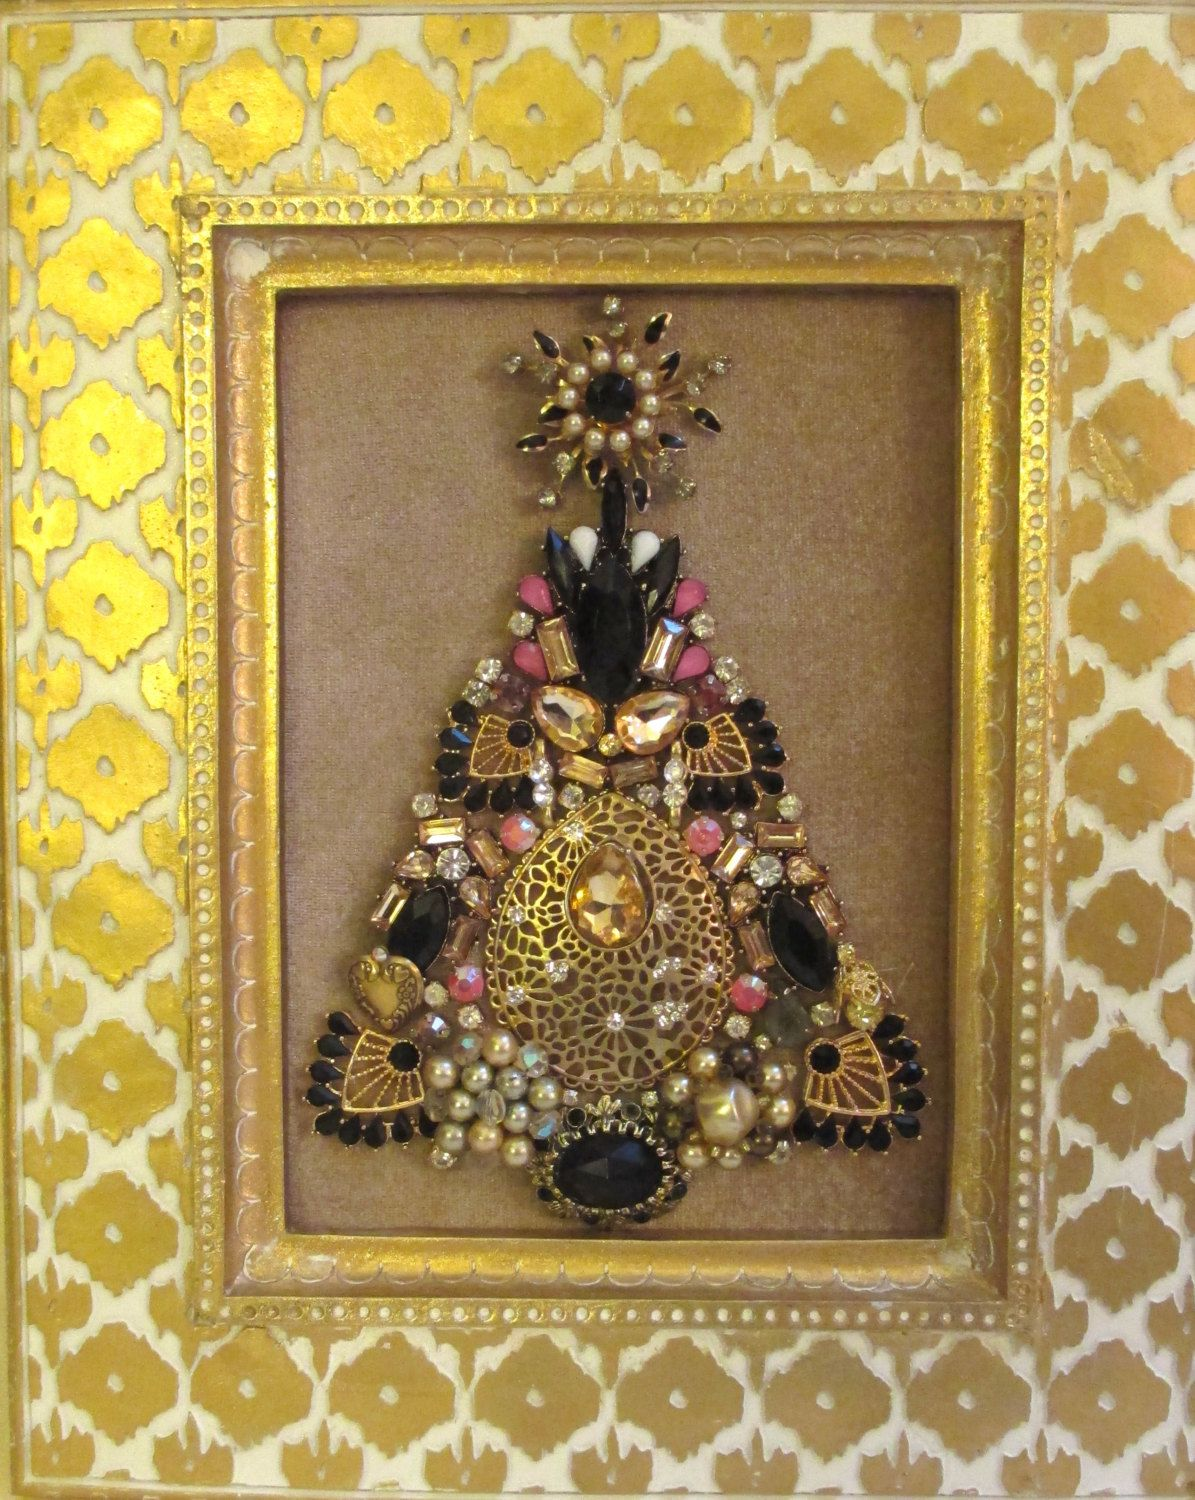 Jeweled Framed Jewelry Christmas Tree Beige Gold Black Vintage Deco